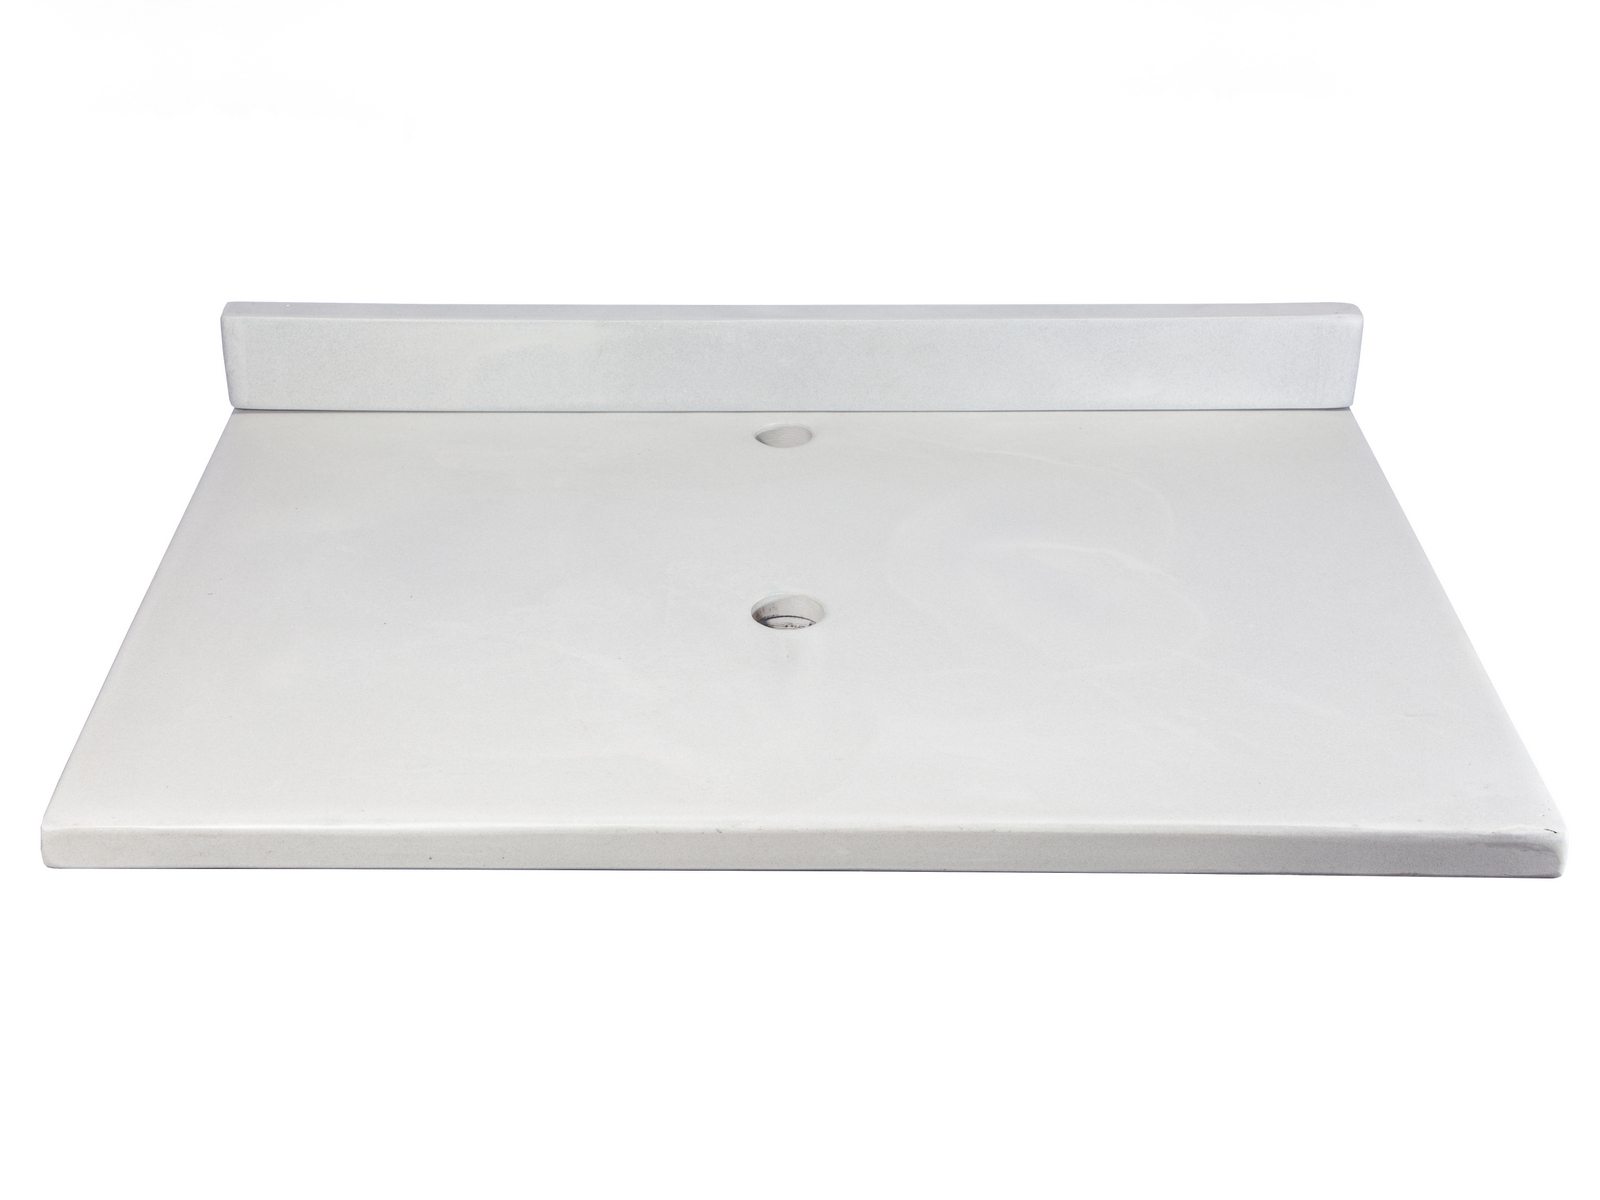 Concrete Countertops-31-in x 22-in Concrete Counter Top with Back Splash - Light Gray